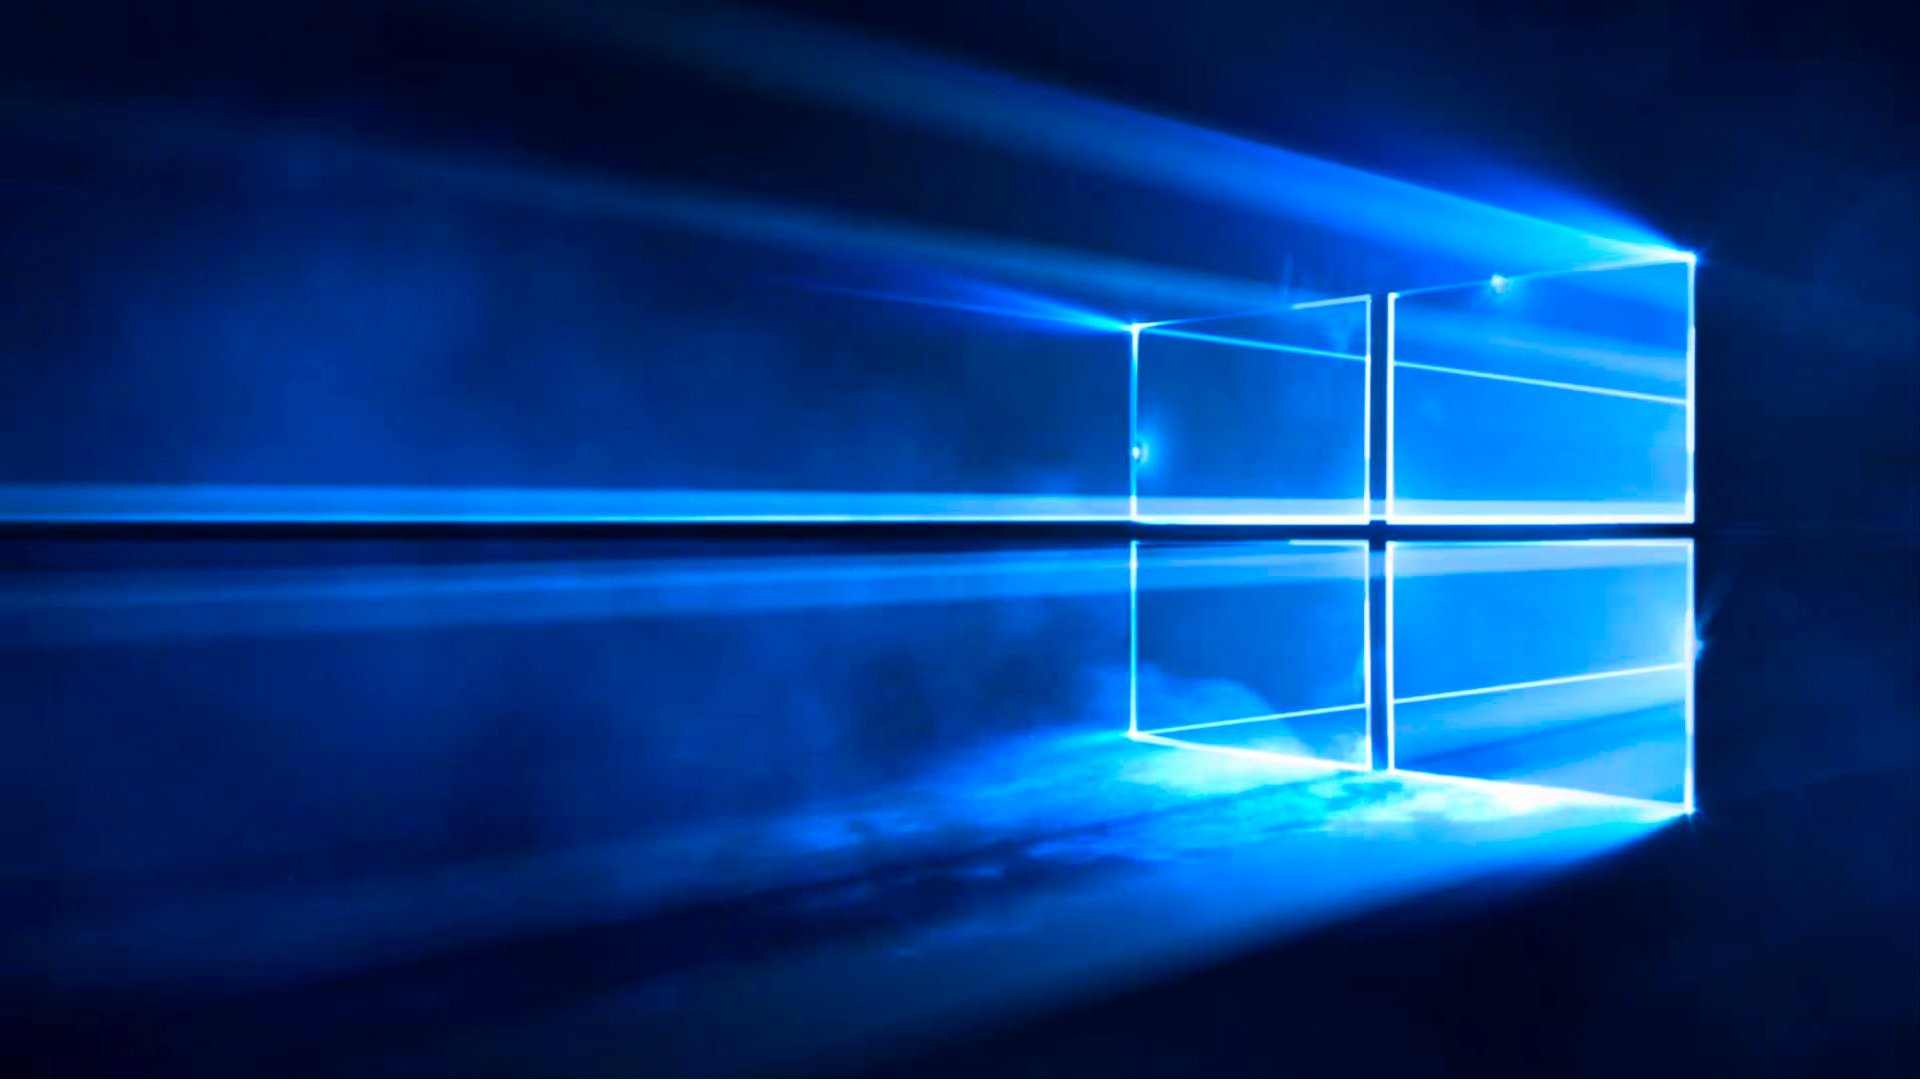 The new Windows 10 default wallpaper and lock screen image is one of 1920x1080